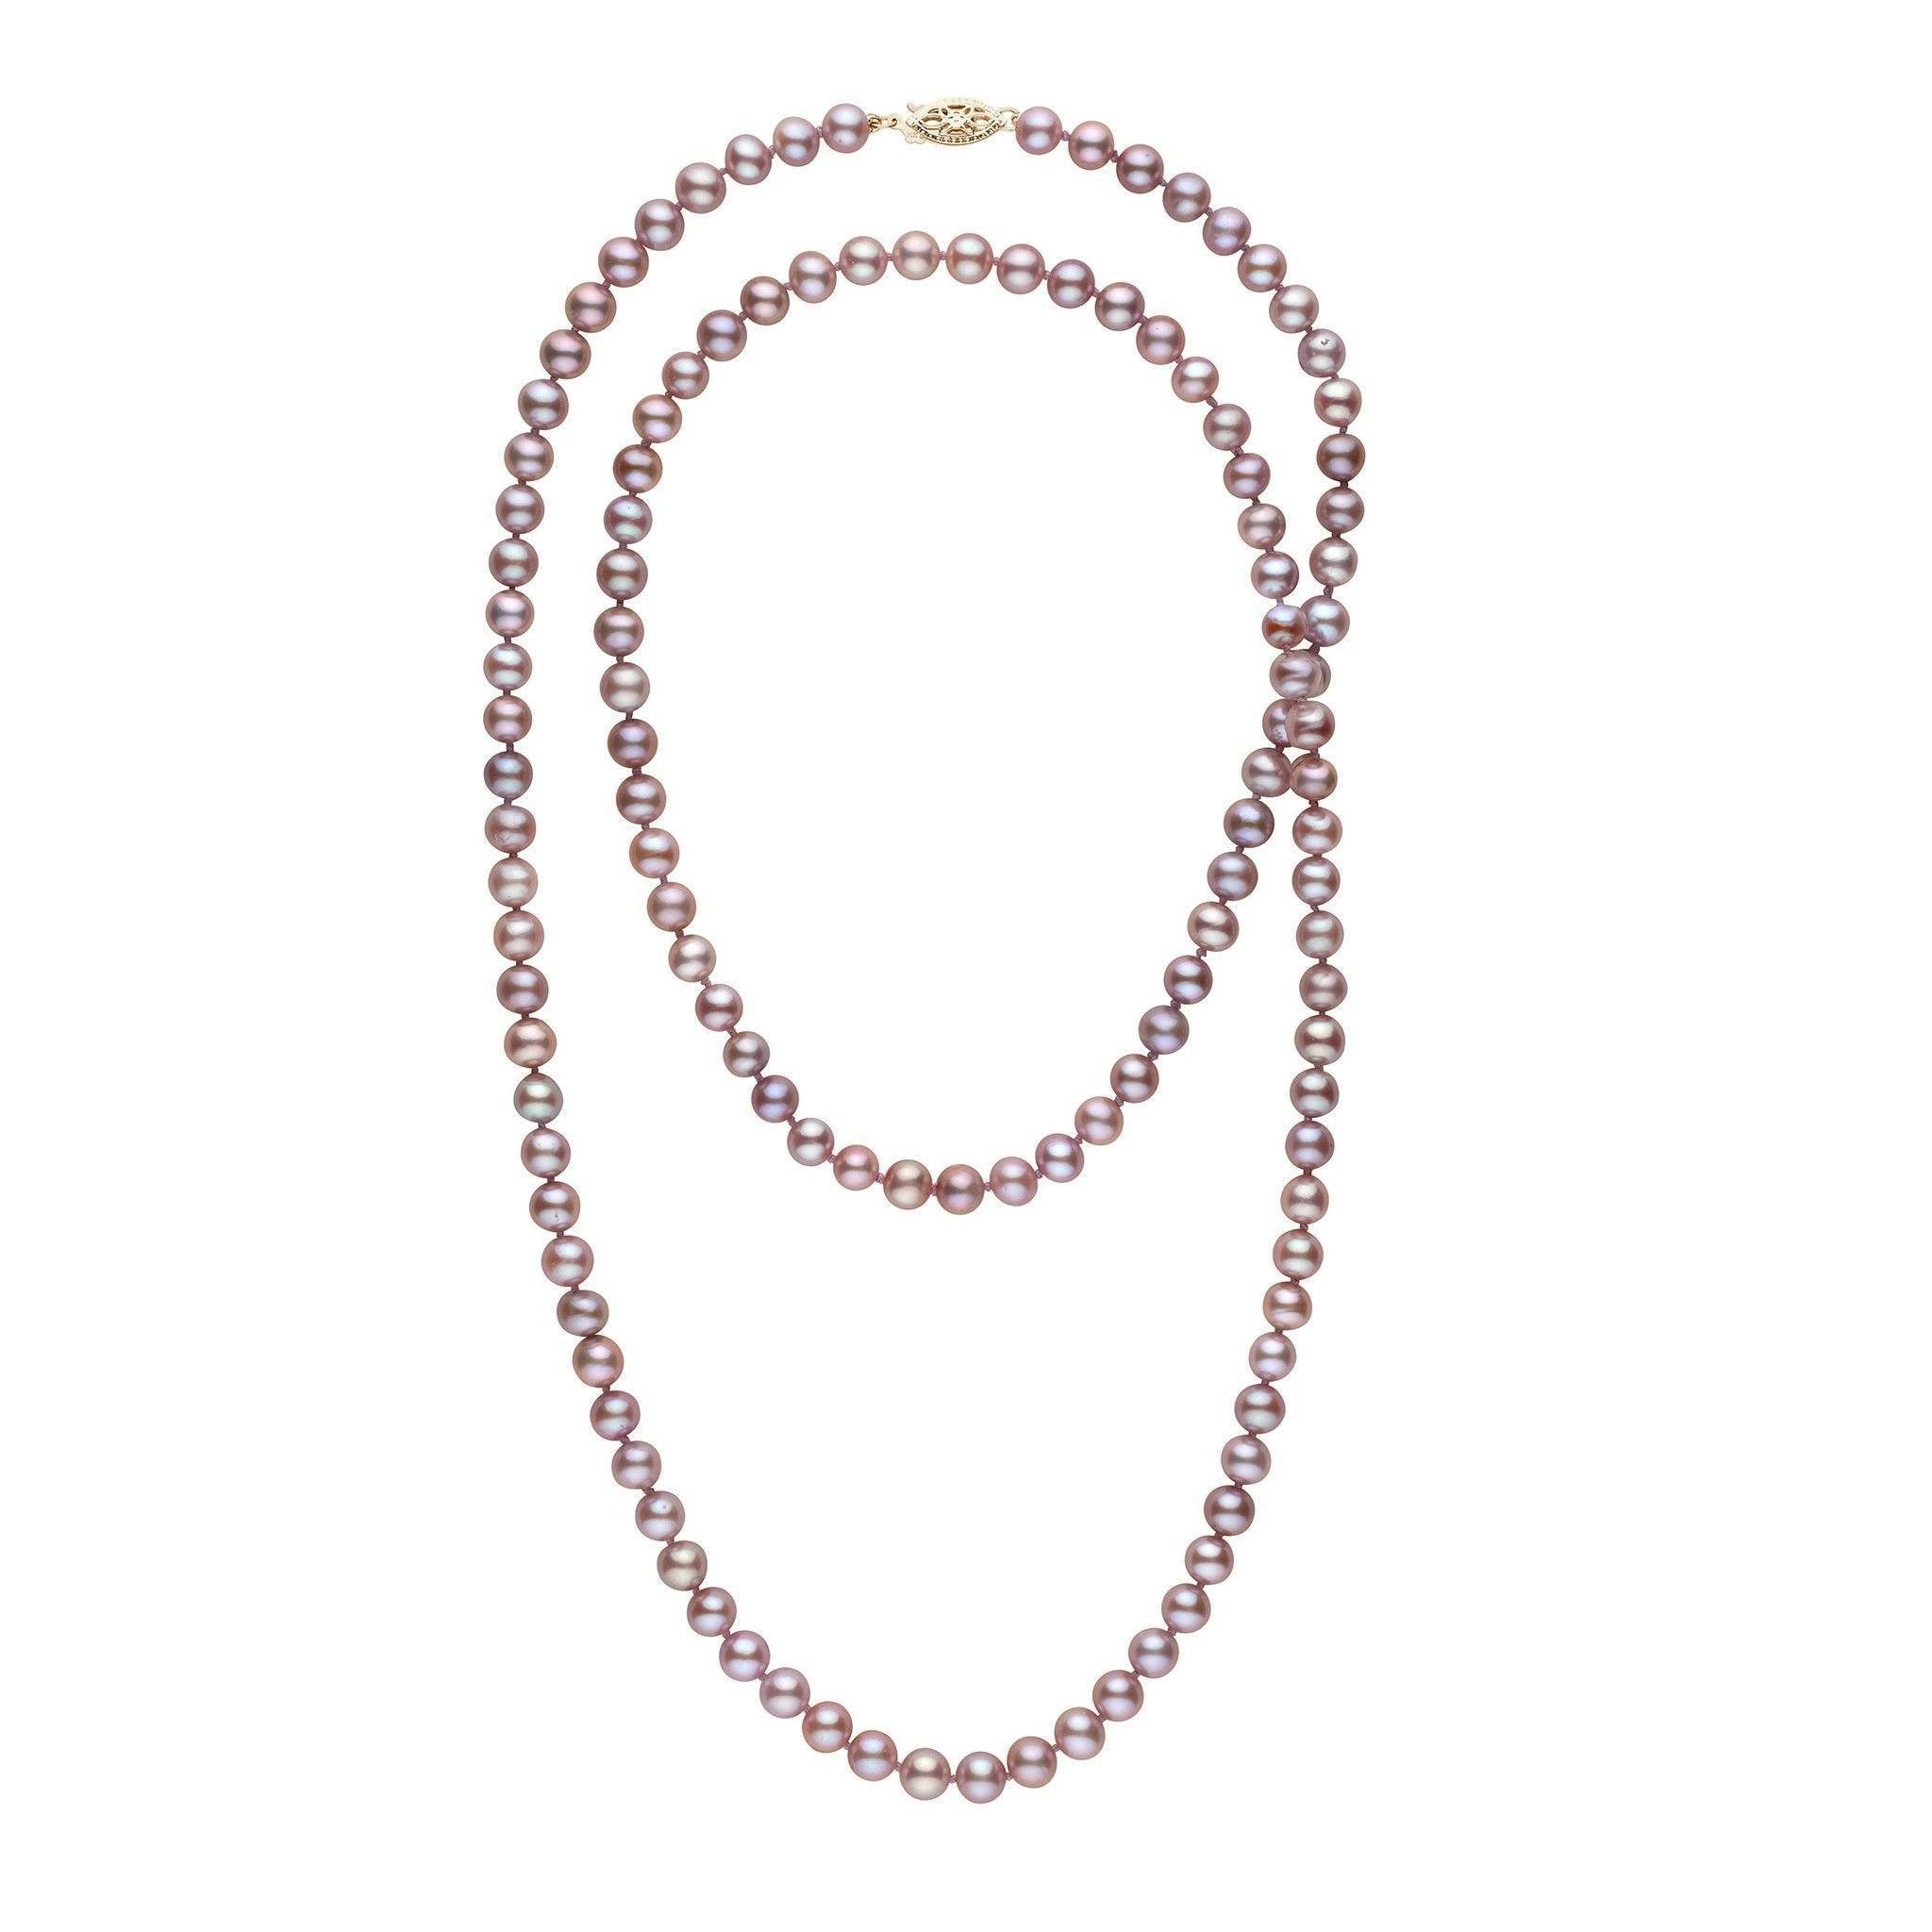 35-inch 6.5-7.0 mm AA+ Lavender Freshwater Pearl Necklace